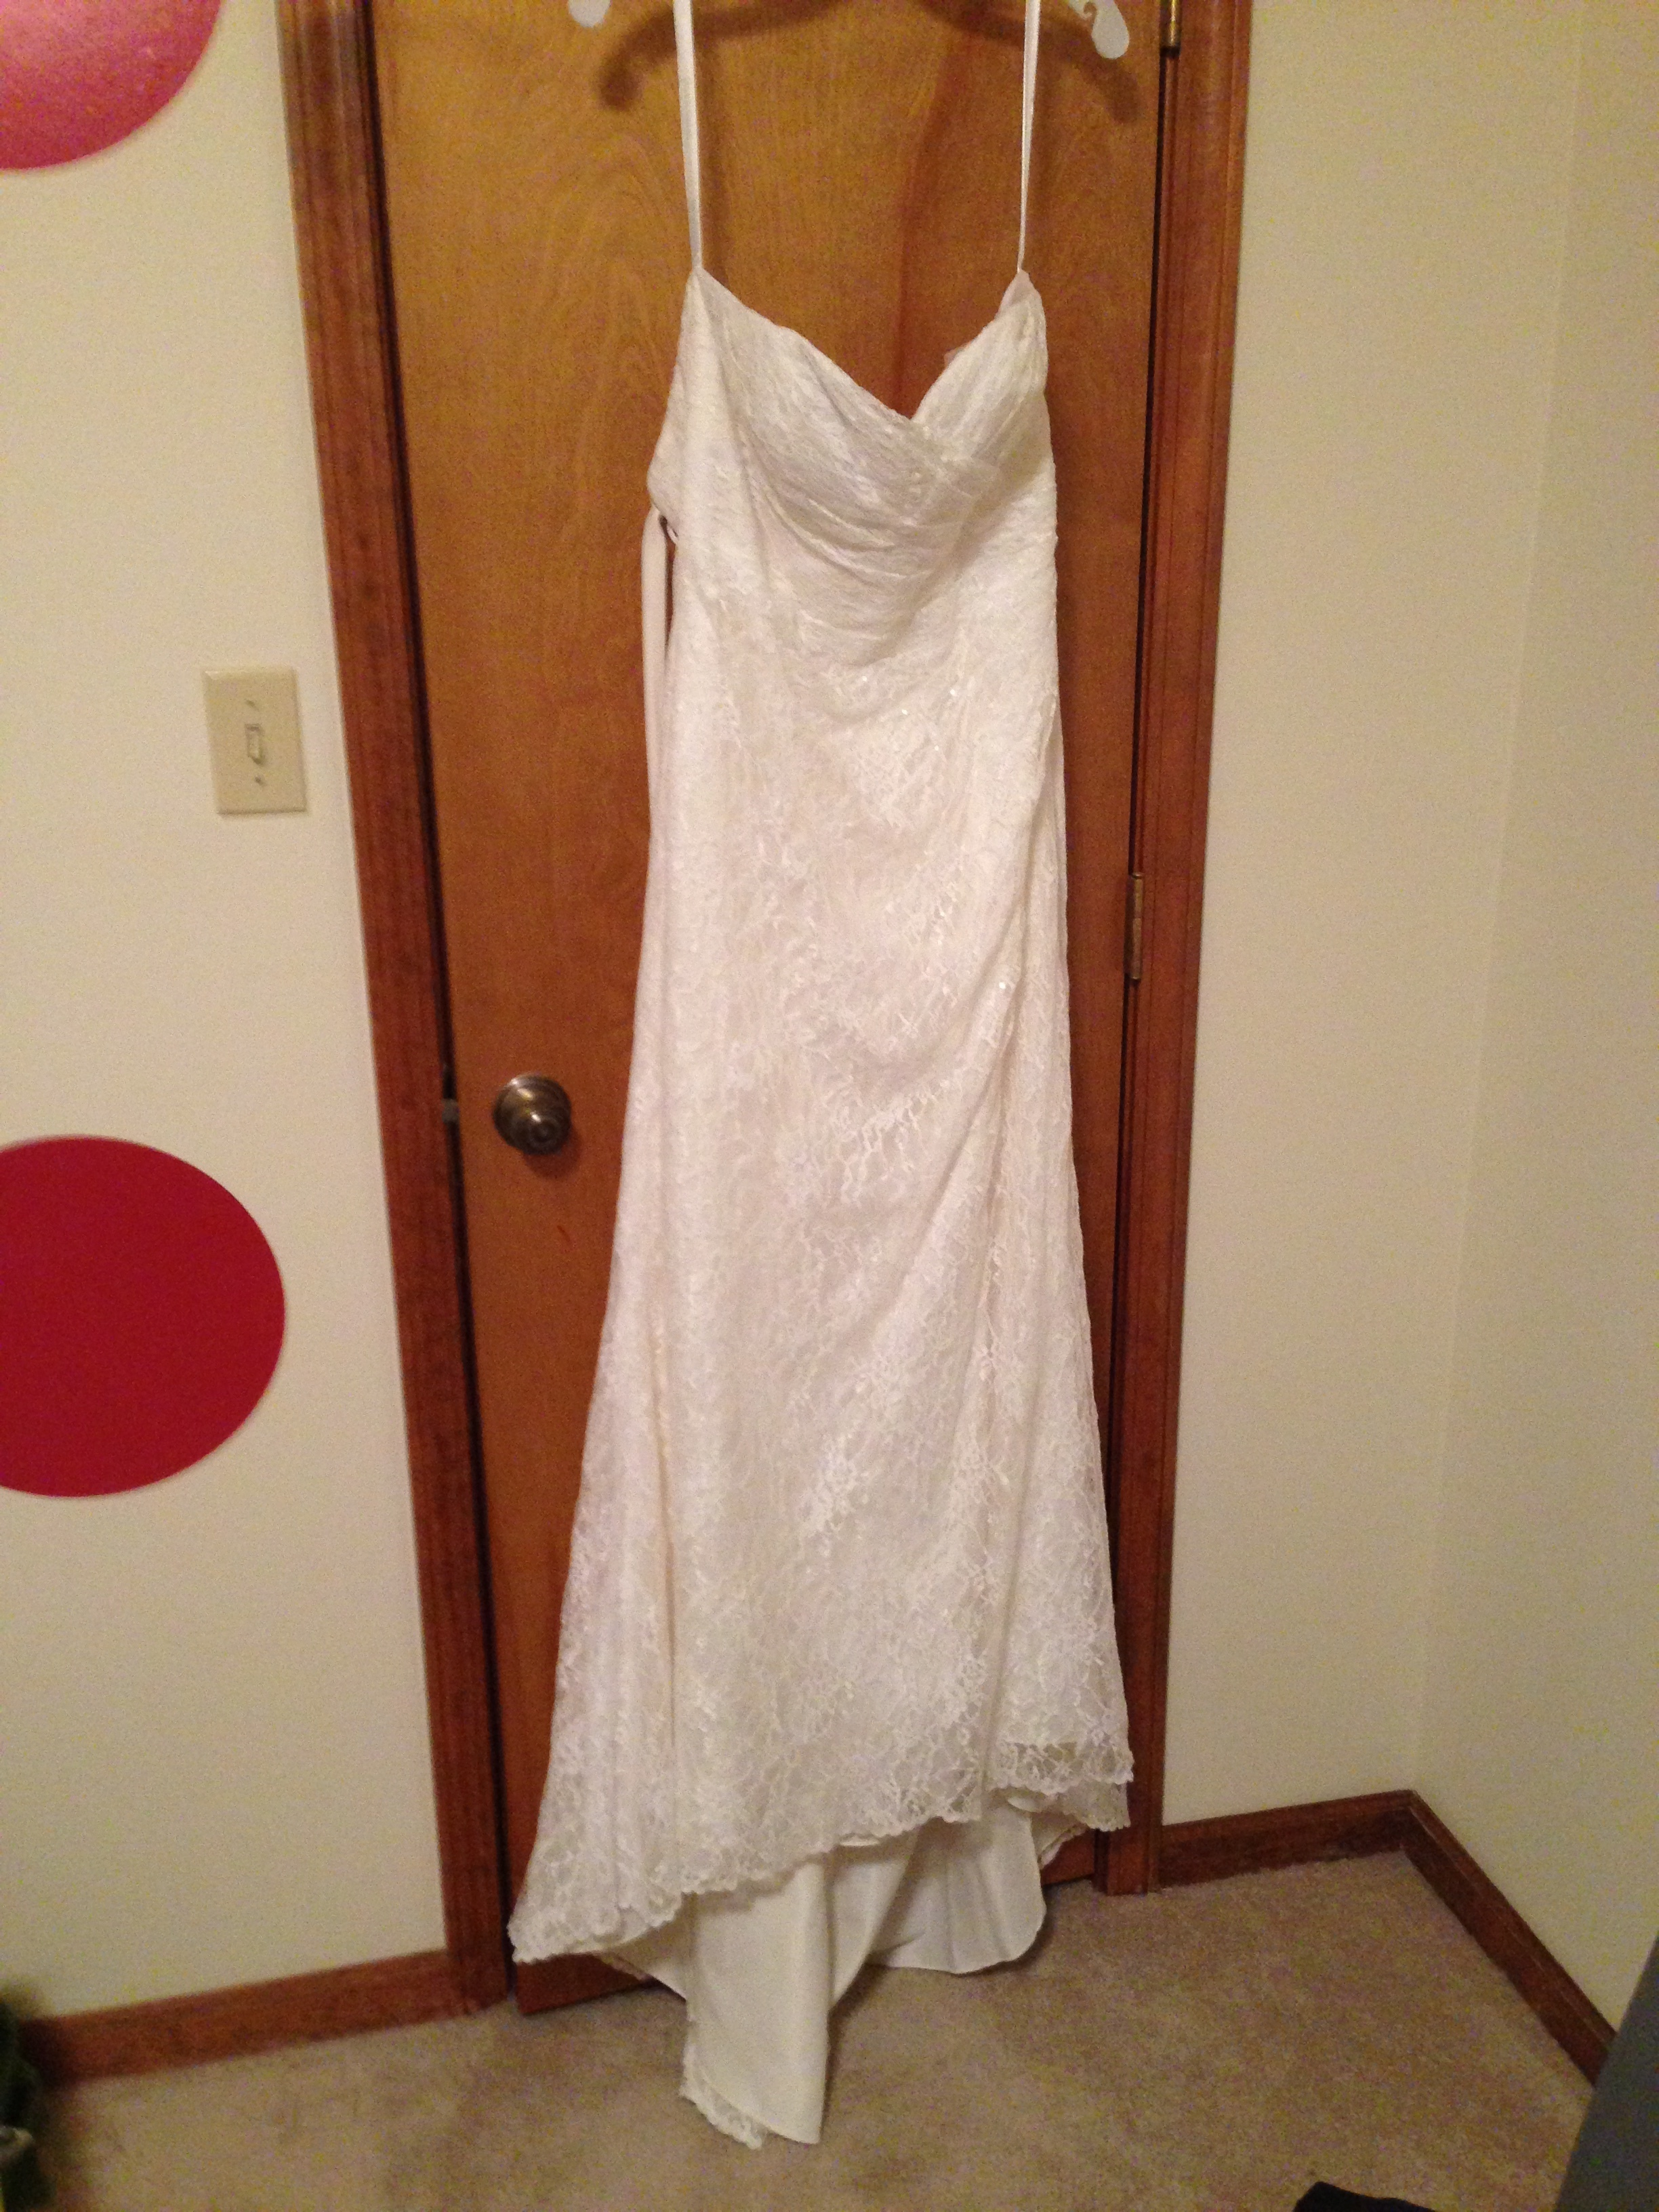 David's bridal - Sweetheart Strapless Lace Wedding Dress - WG3263 size 14 - $300 - (51% OFF)